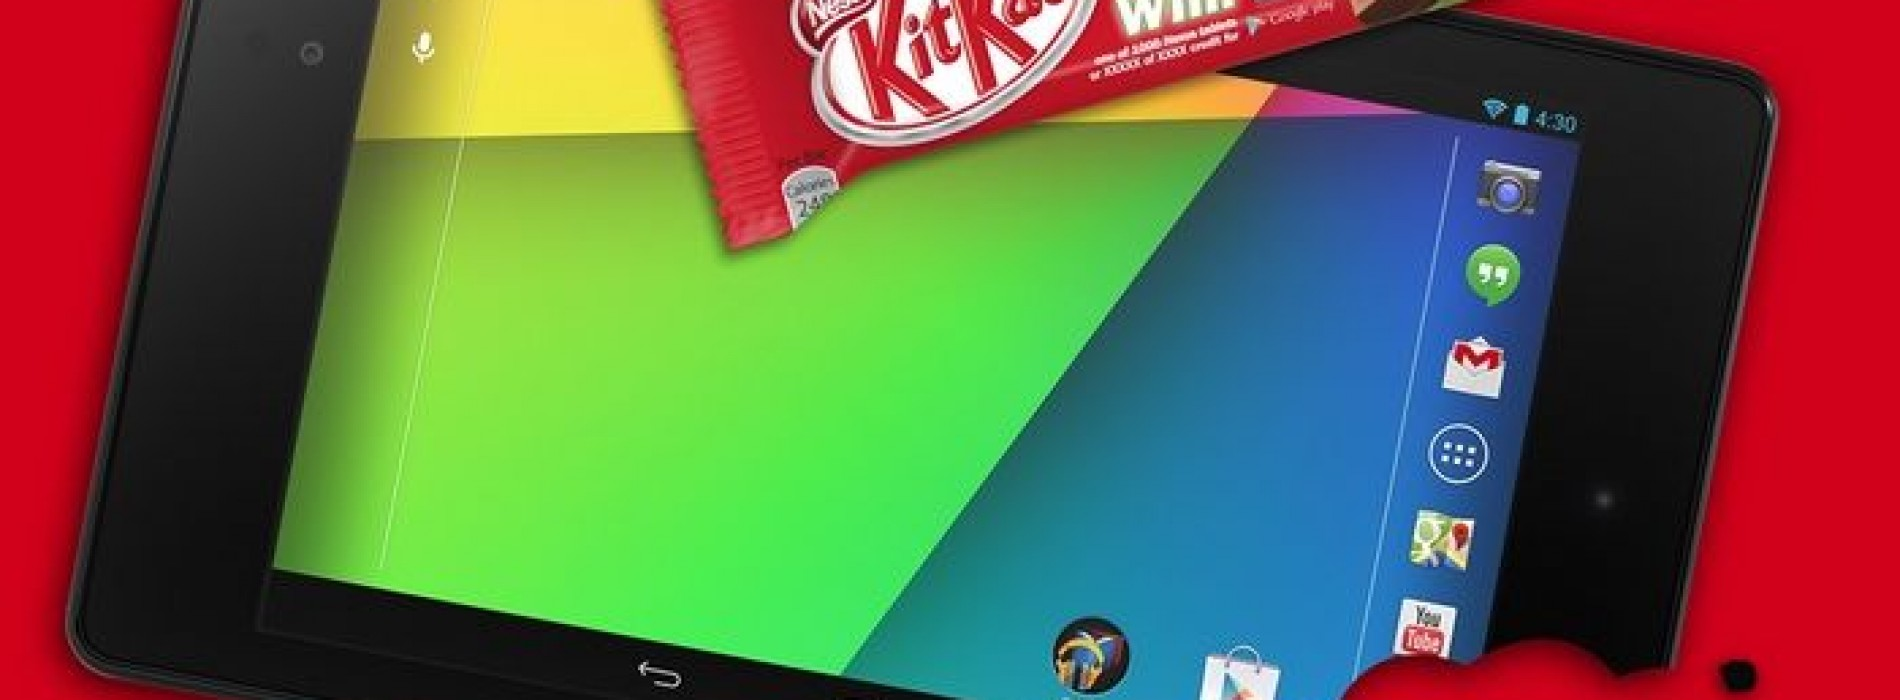 Android 4.4.3 OTA rollout started for Nexus devices, factory images also available